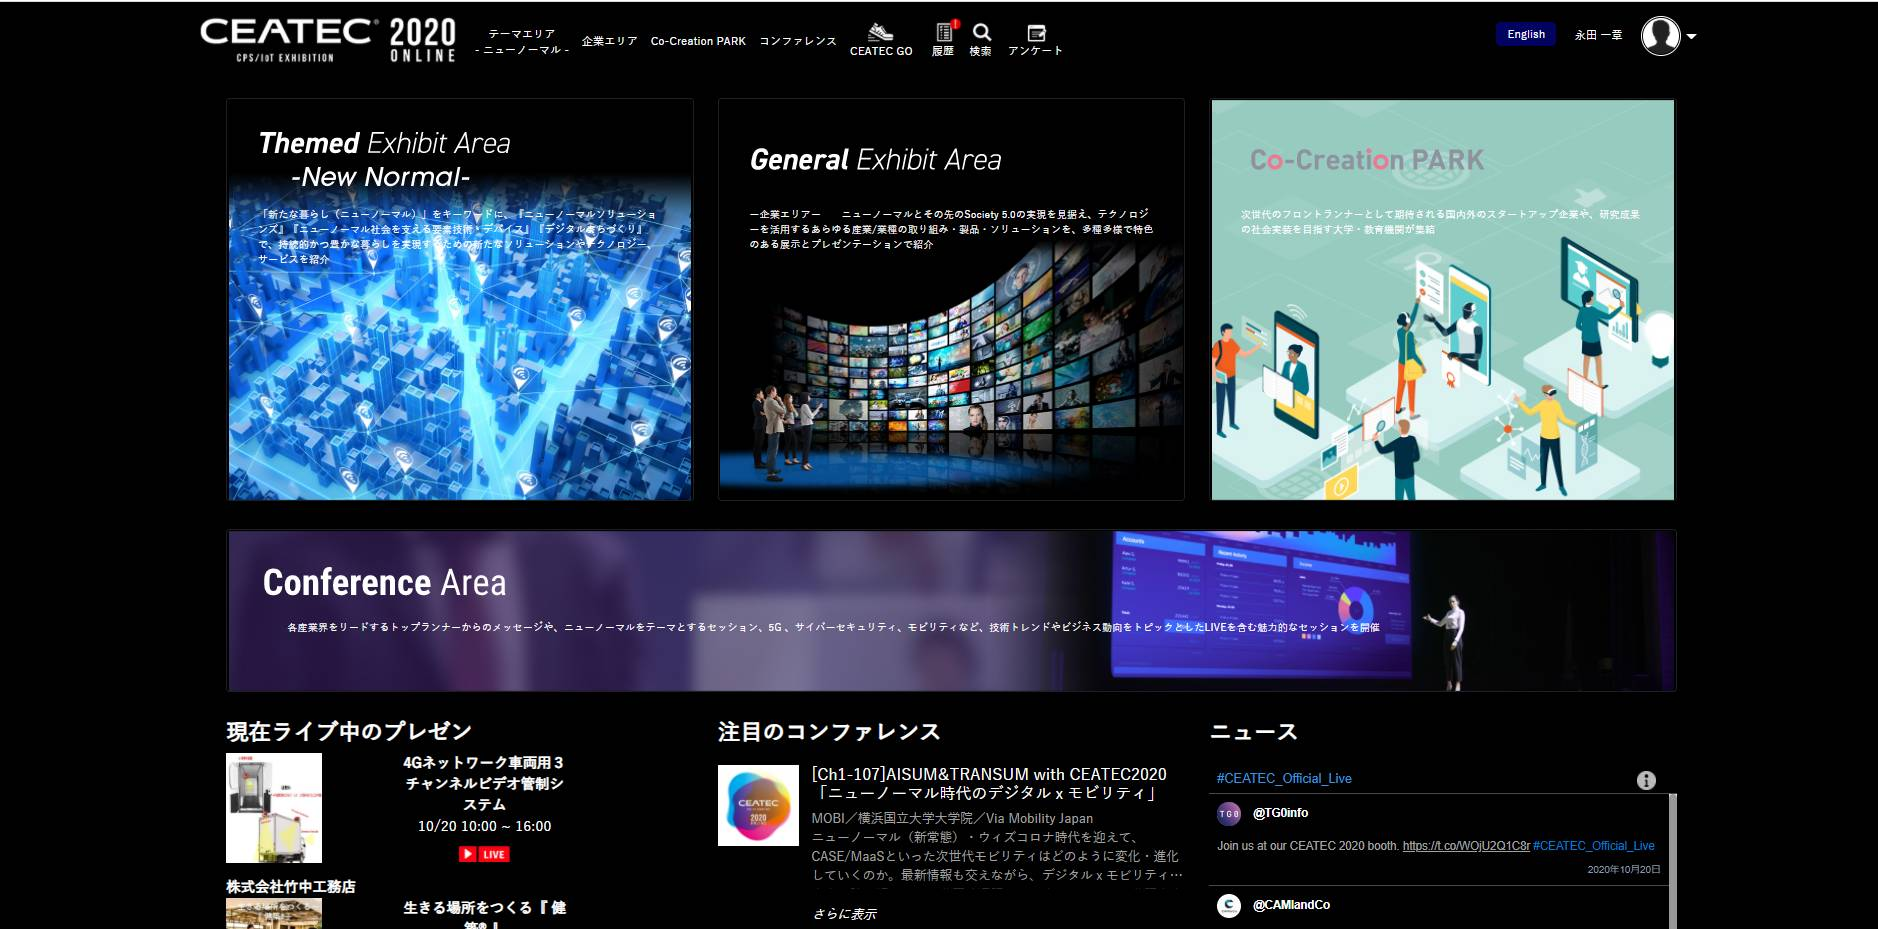 The CEATEC website offers virtual space for 356 exhibitors to make online presentations, and will host a slew of conferences scheduled to be streamed during the four-day event.